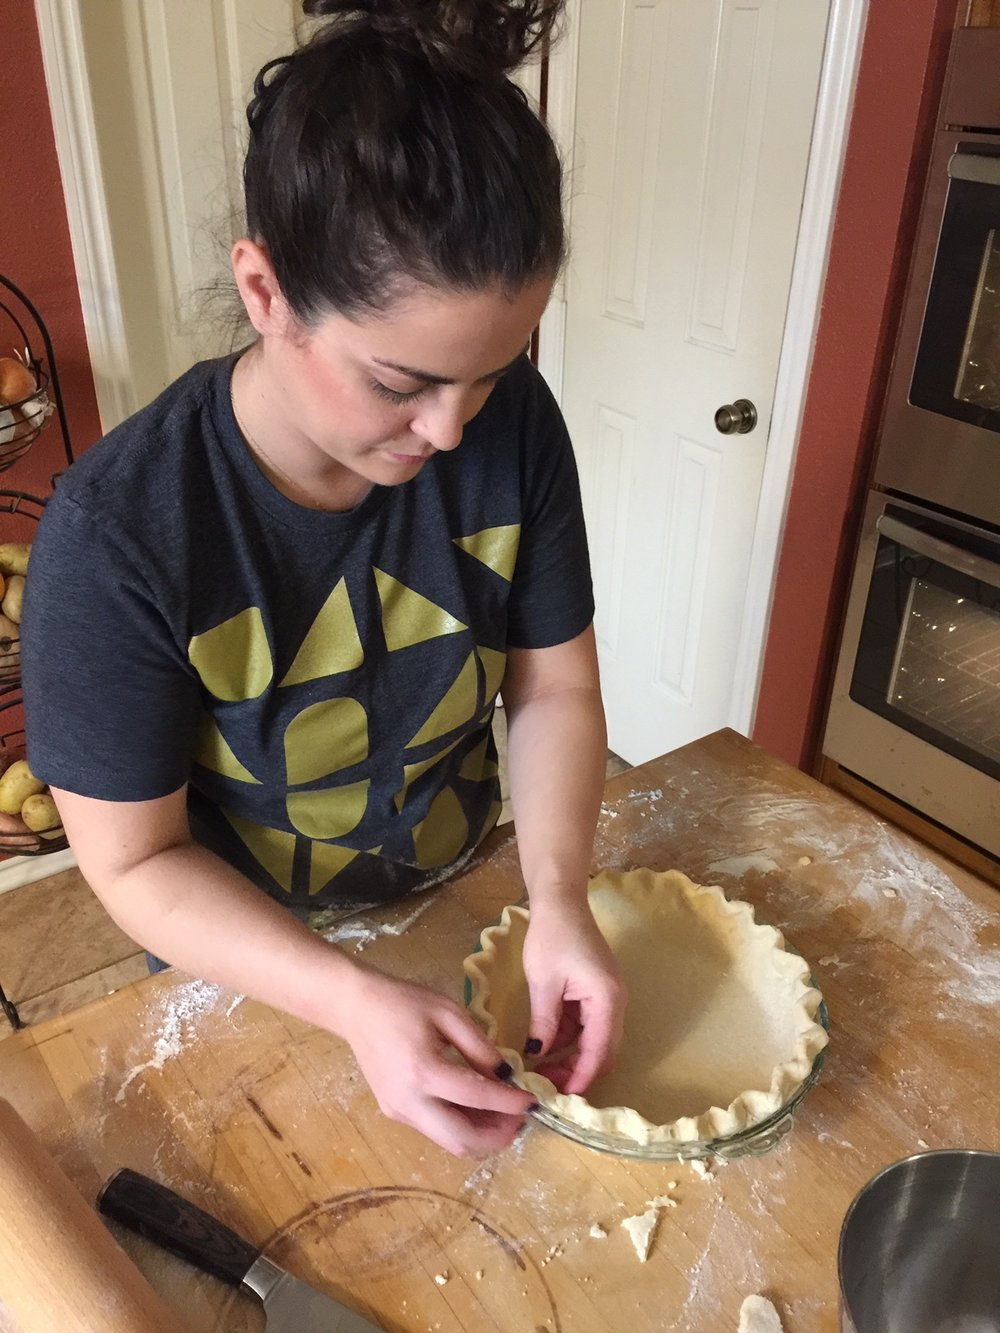 Caitlin the pie crust QUEEN!